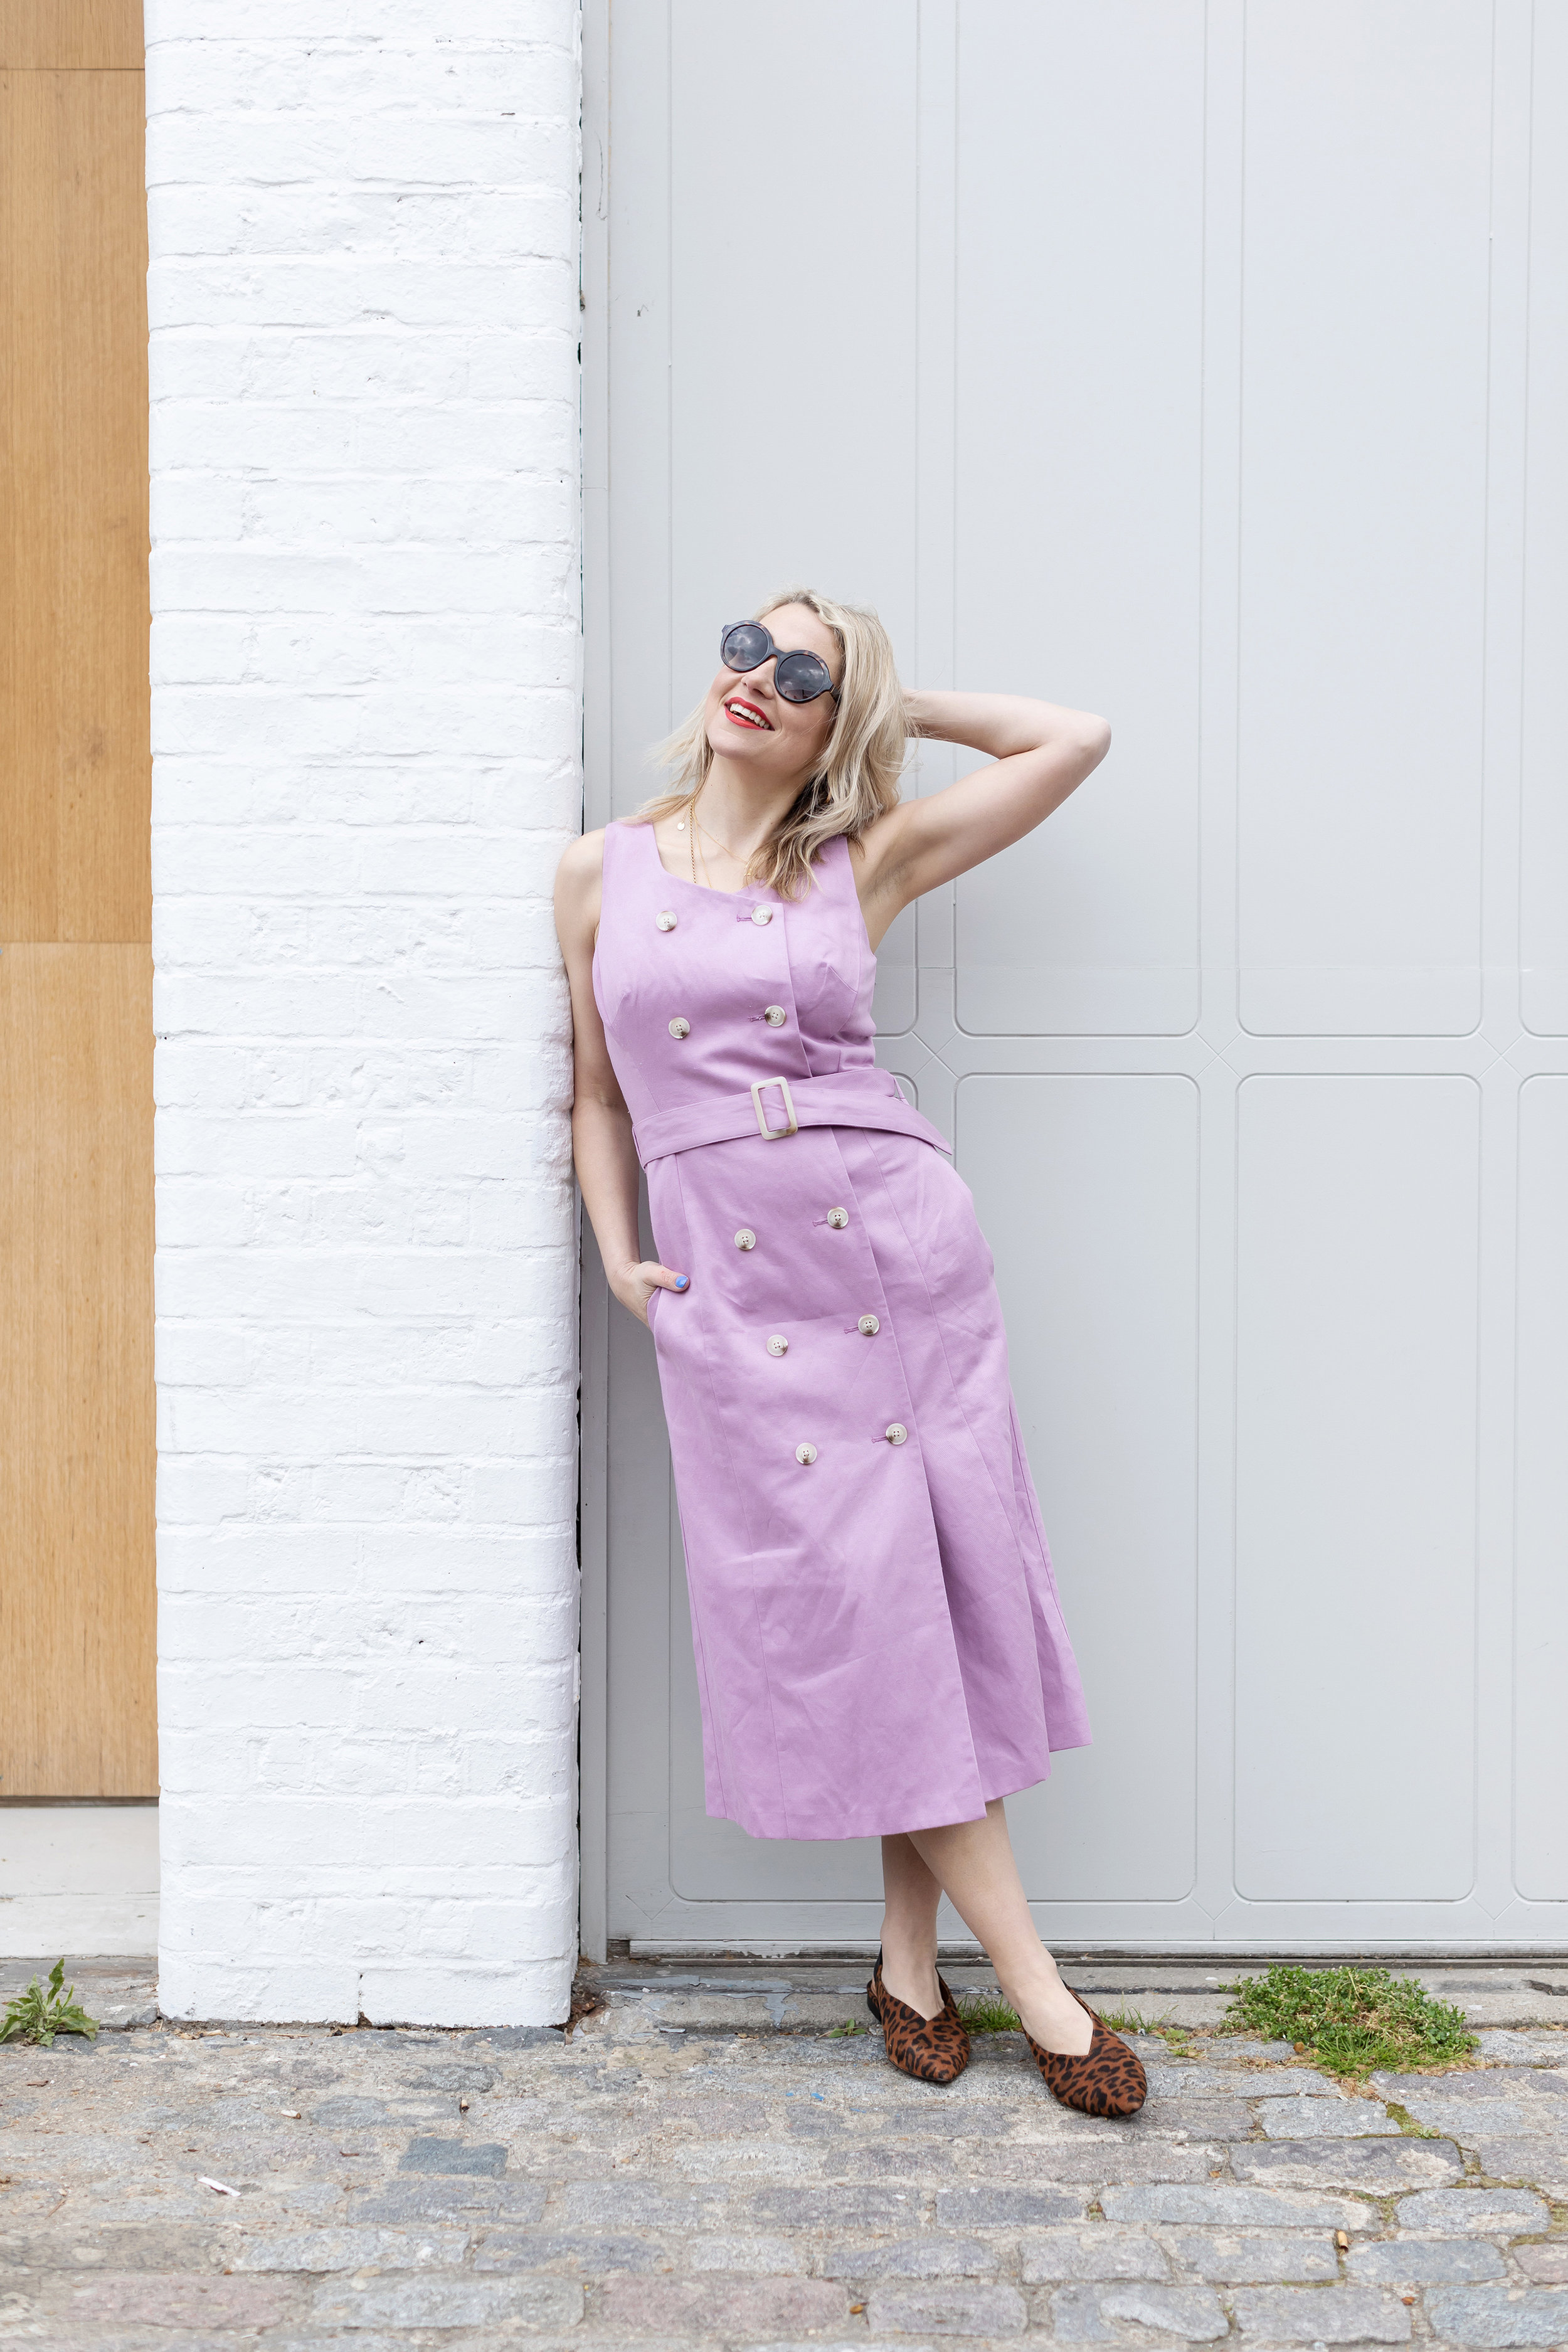 71e9a49c93 I love the lilac colour of this dress - it's so pretty but I also like the  modern cut of it. It can be worn both smart and casually.